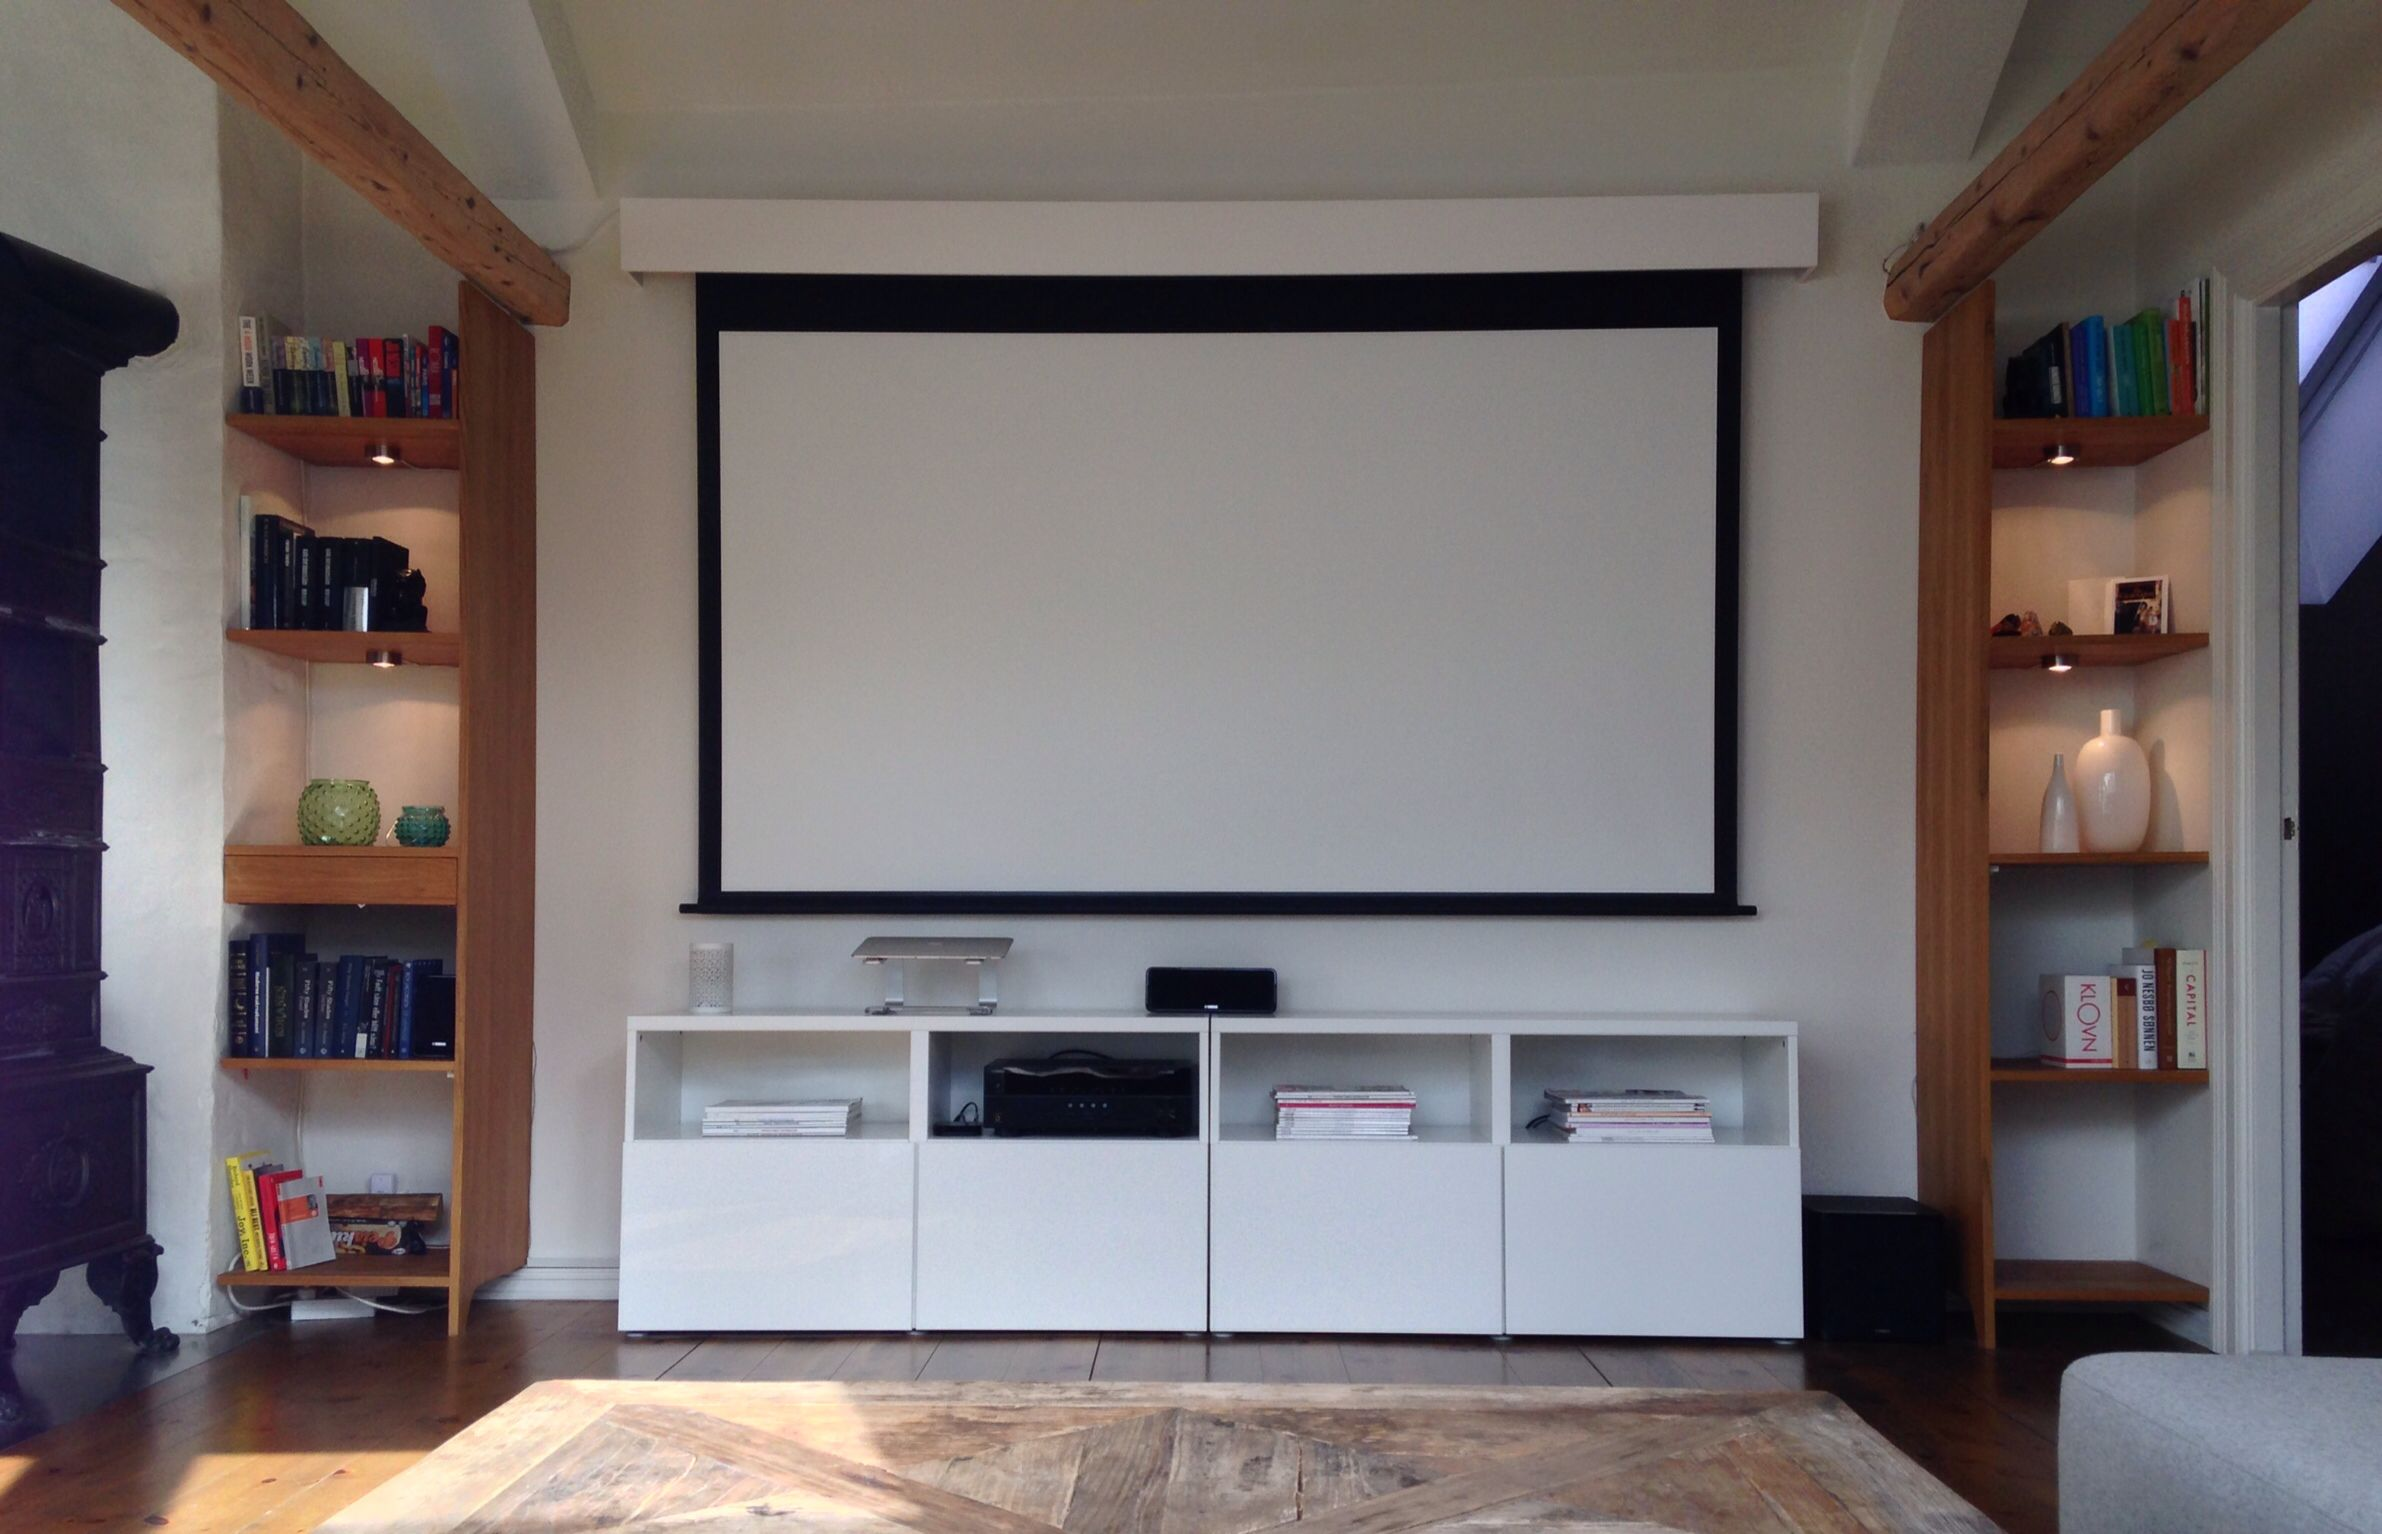 How To Hide The Tv Projector With Screen The Screen Can Be Rolled Up And Hidden In The Custom Made Box Home Cinema Room Projector Screen Living Room Designs